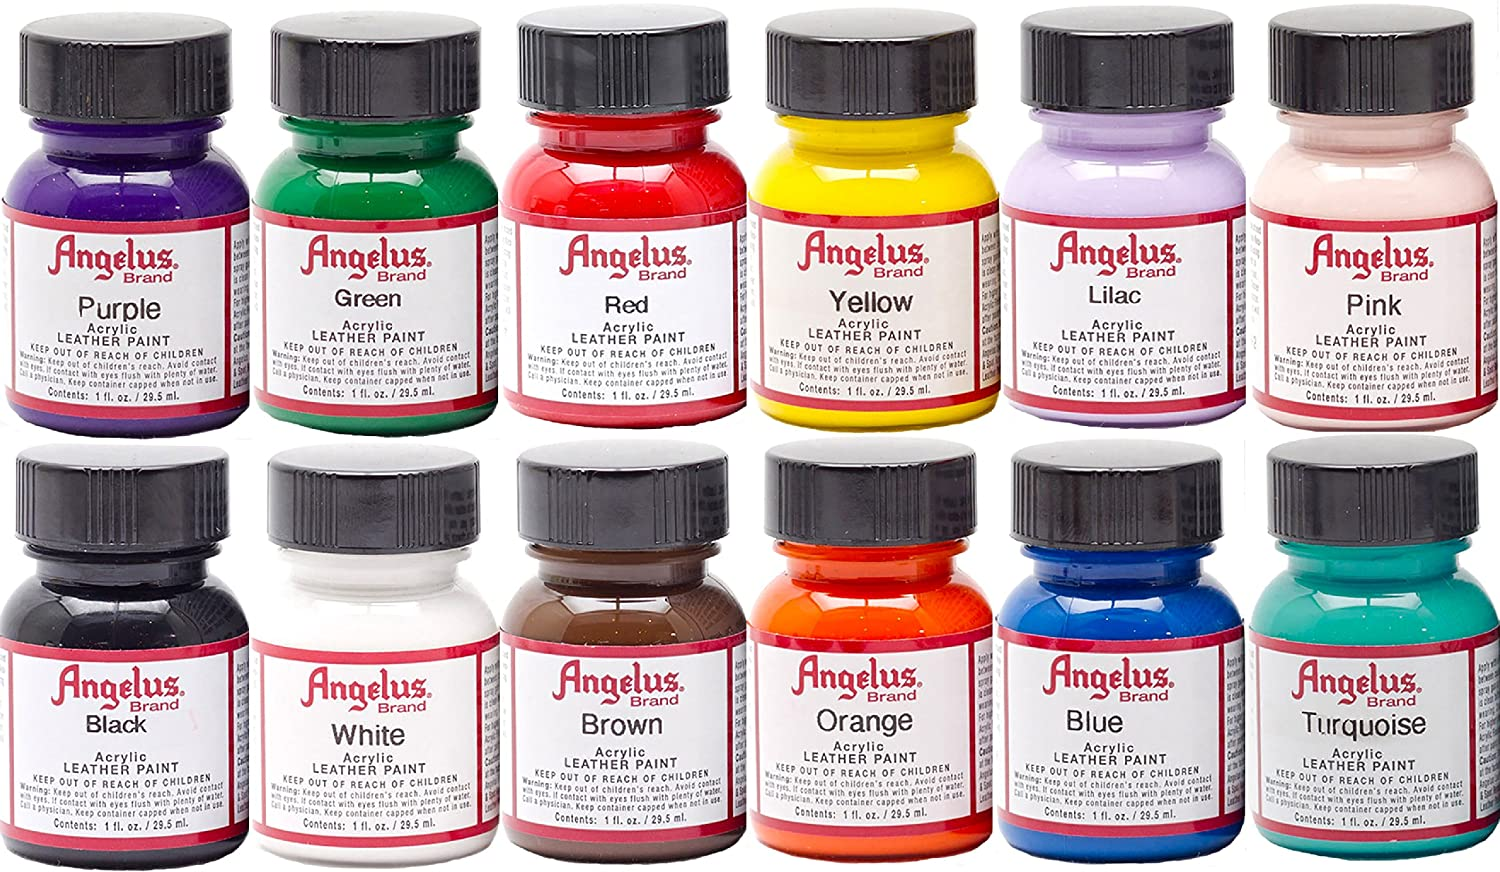 Amazon.com: Angelus Acrylic Leather Paint Starter Kit